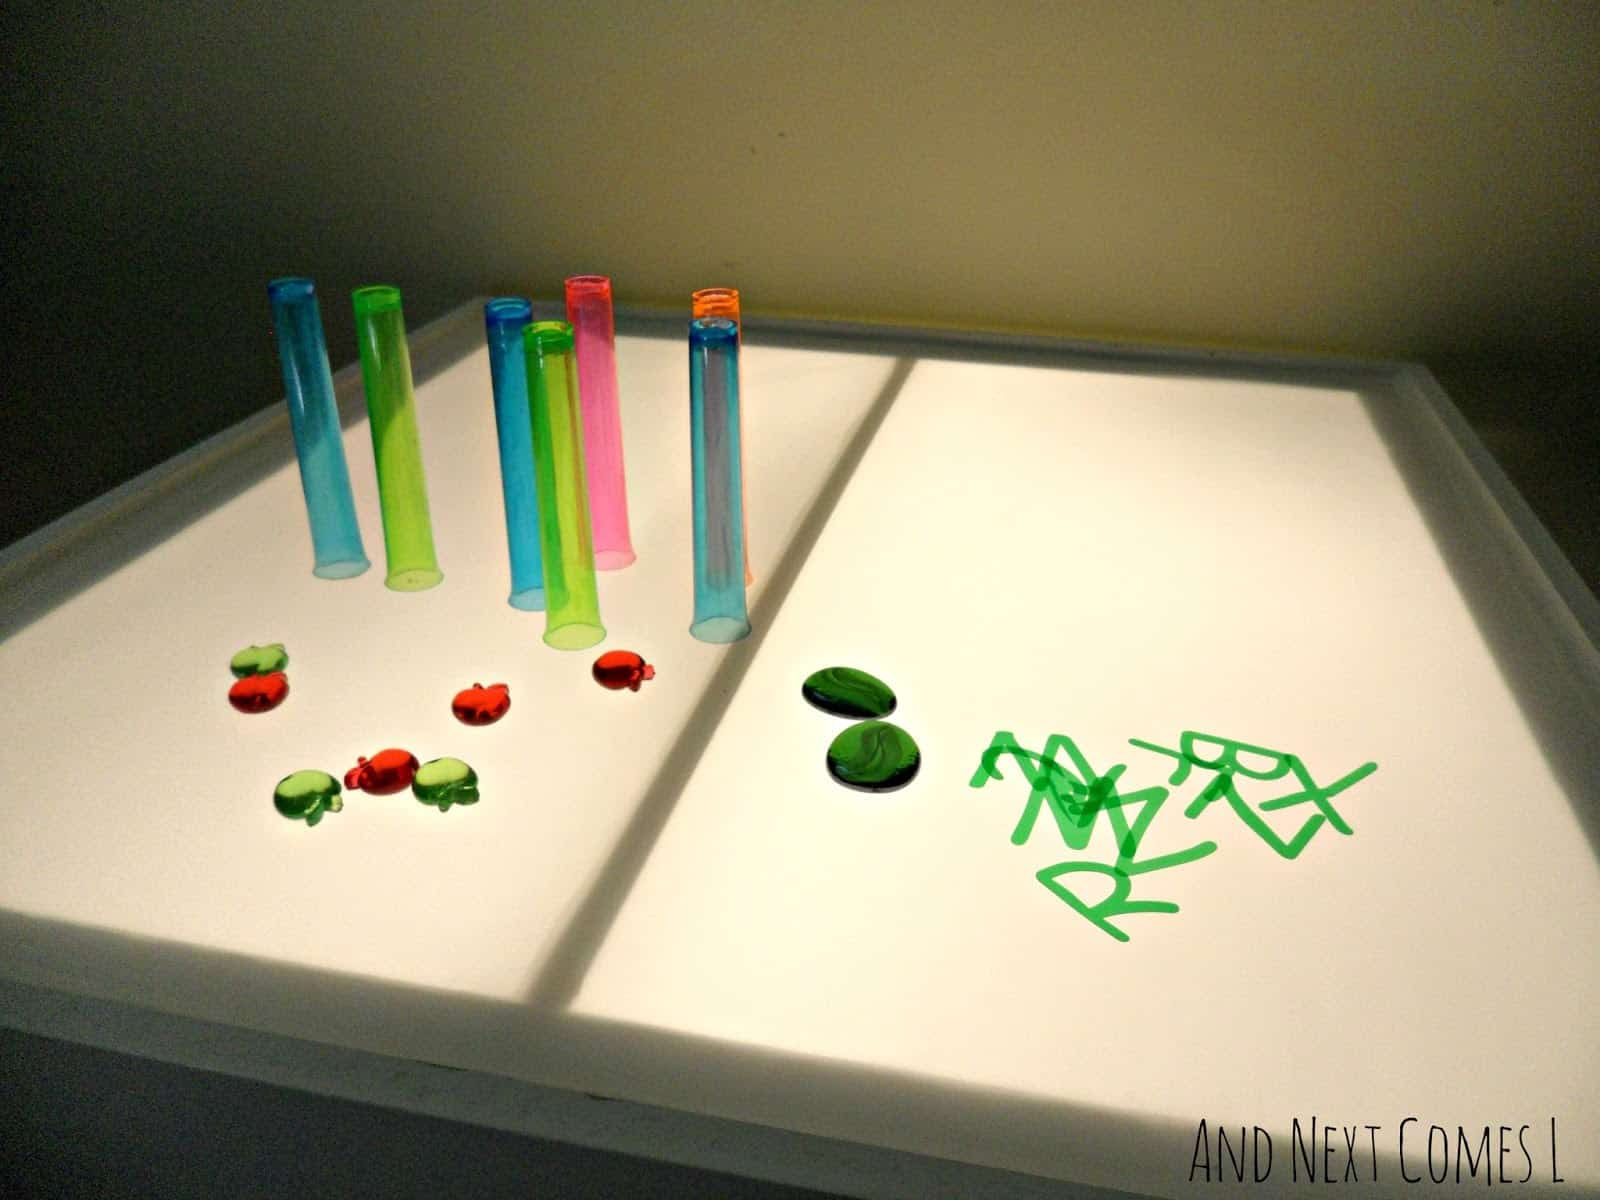 10 Brilliant Diy Toy Hacks For Kids